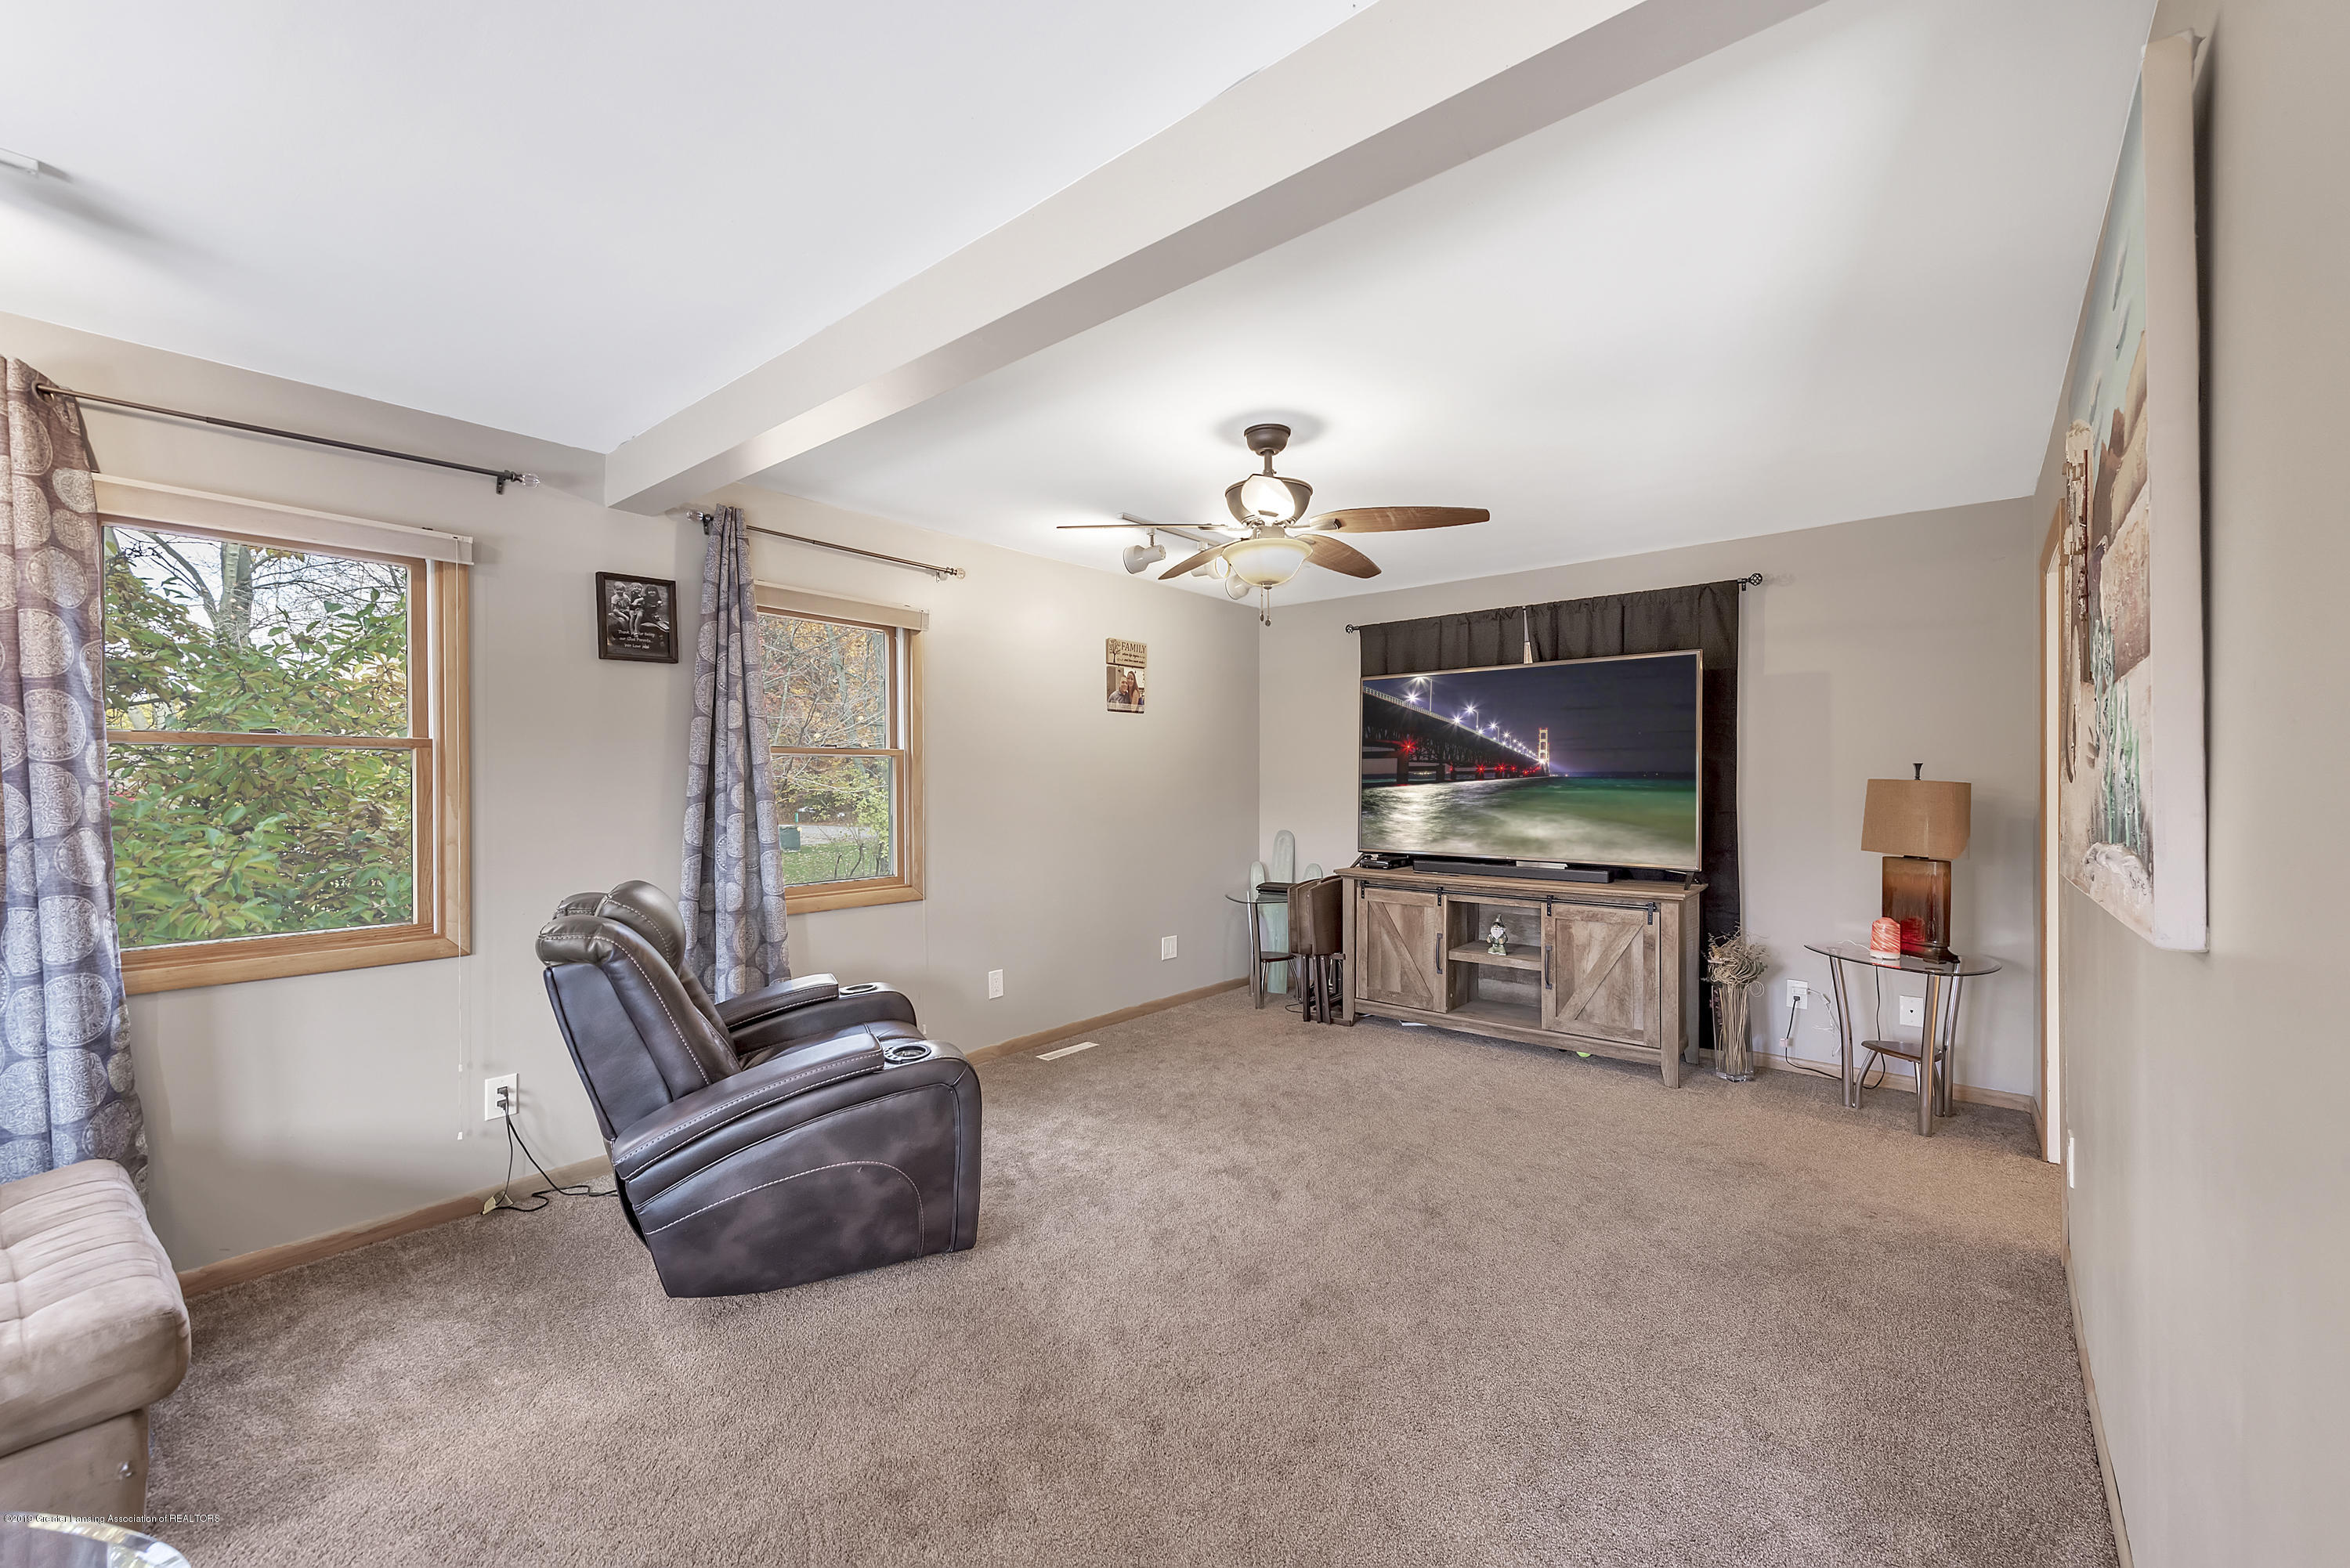 8700 Abbey Rd - 8700-Abbey-Rd-WindowStill-Real-Estate-Ph - 13